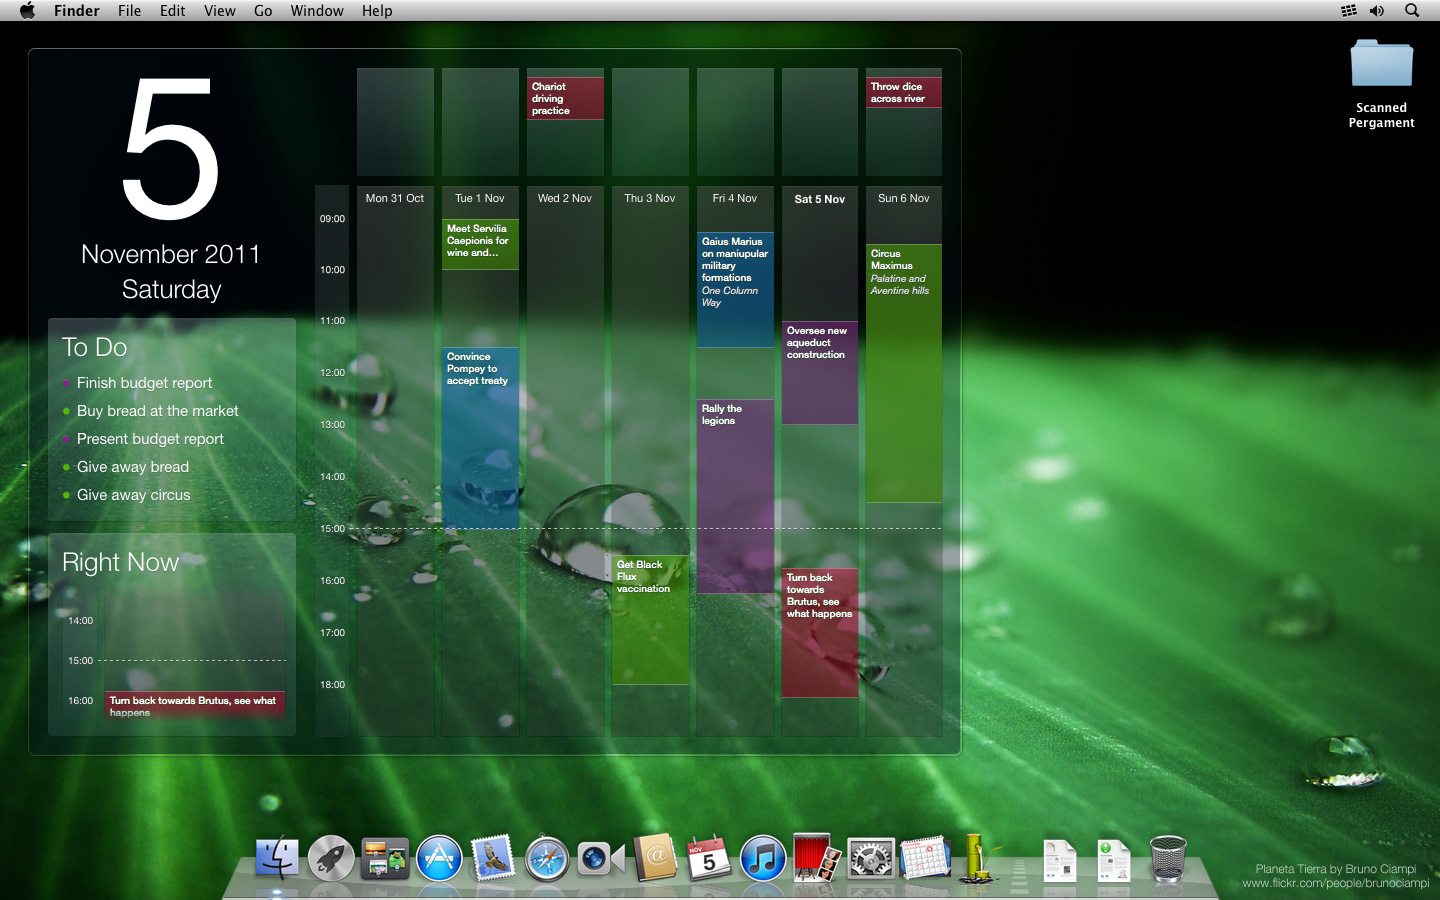 Blotter calendar on green macOS X wallpaper.